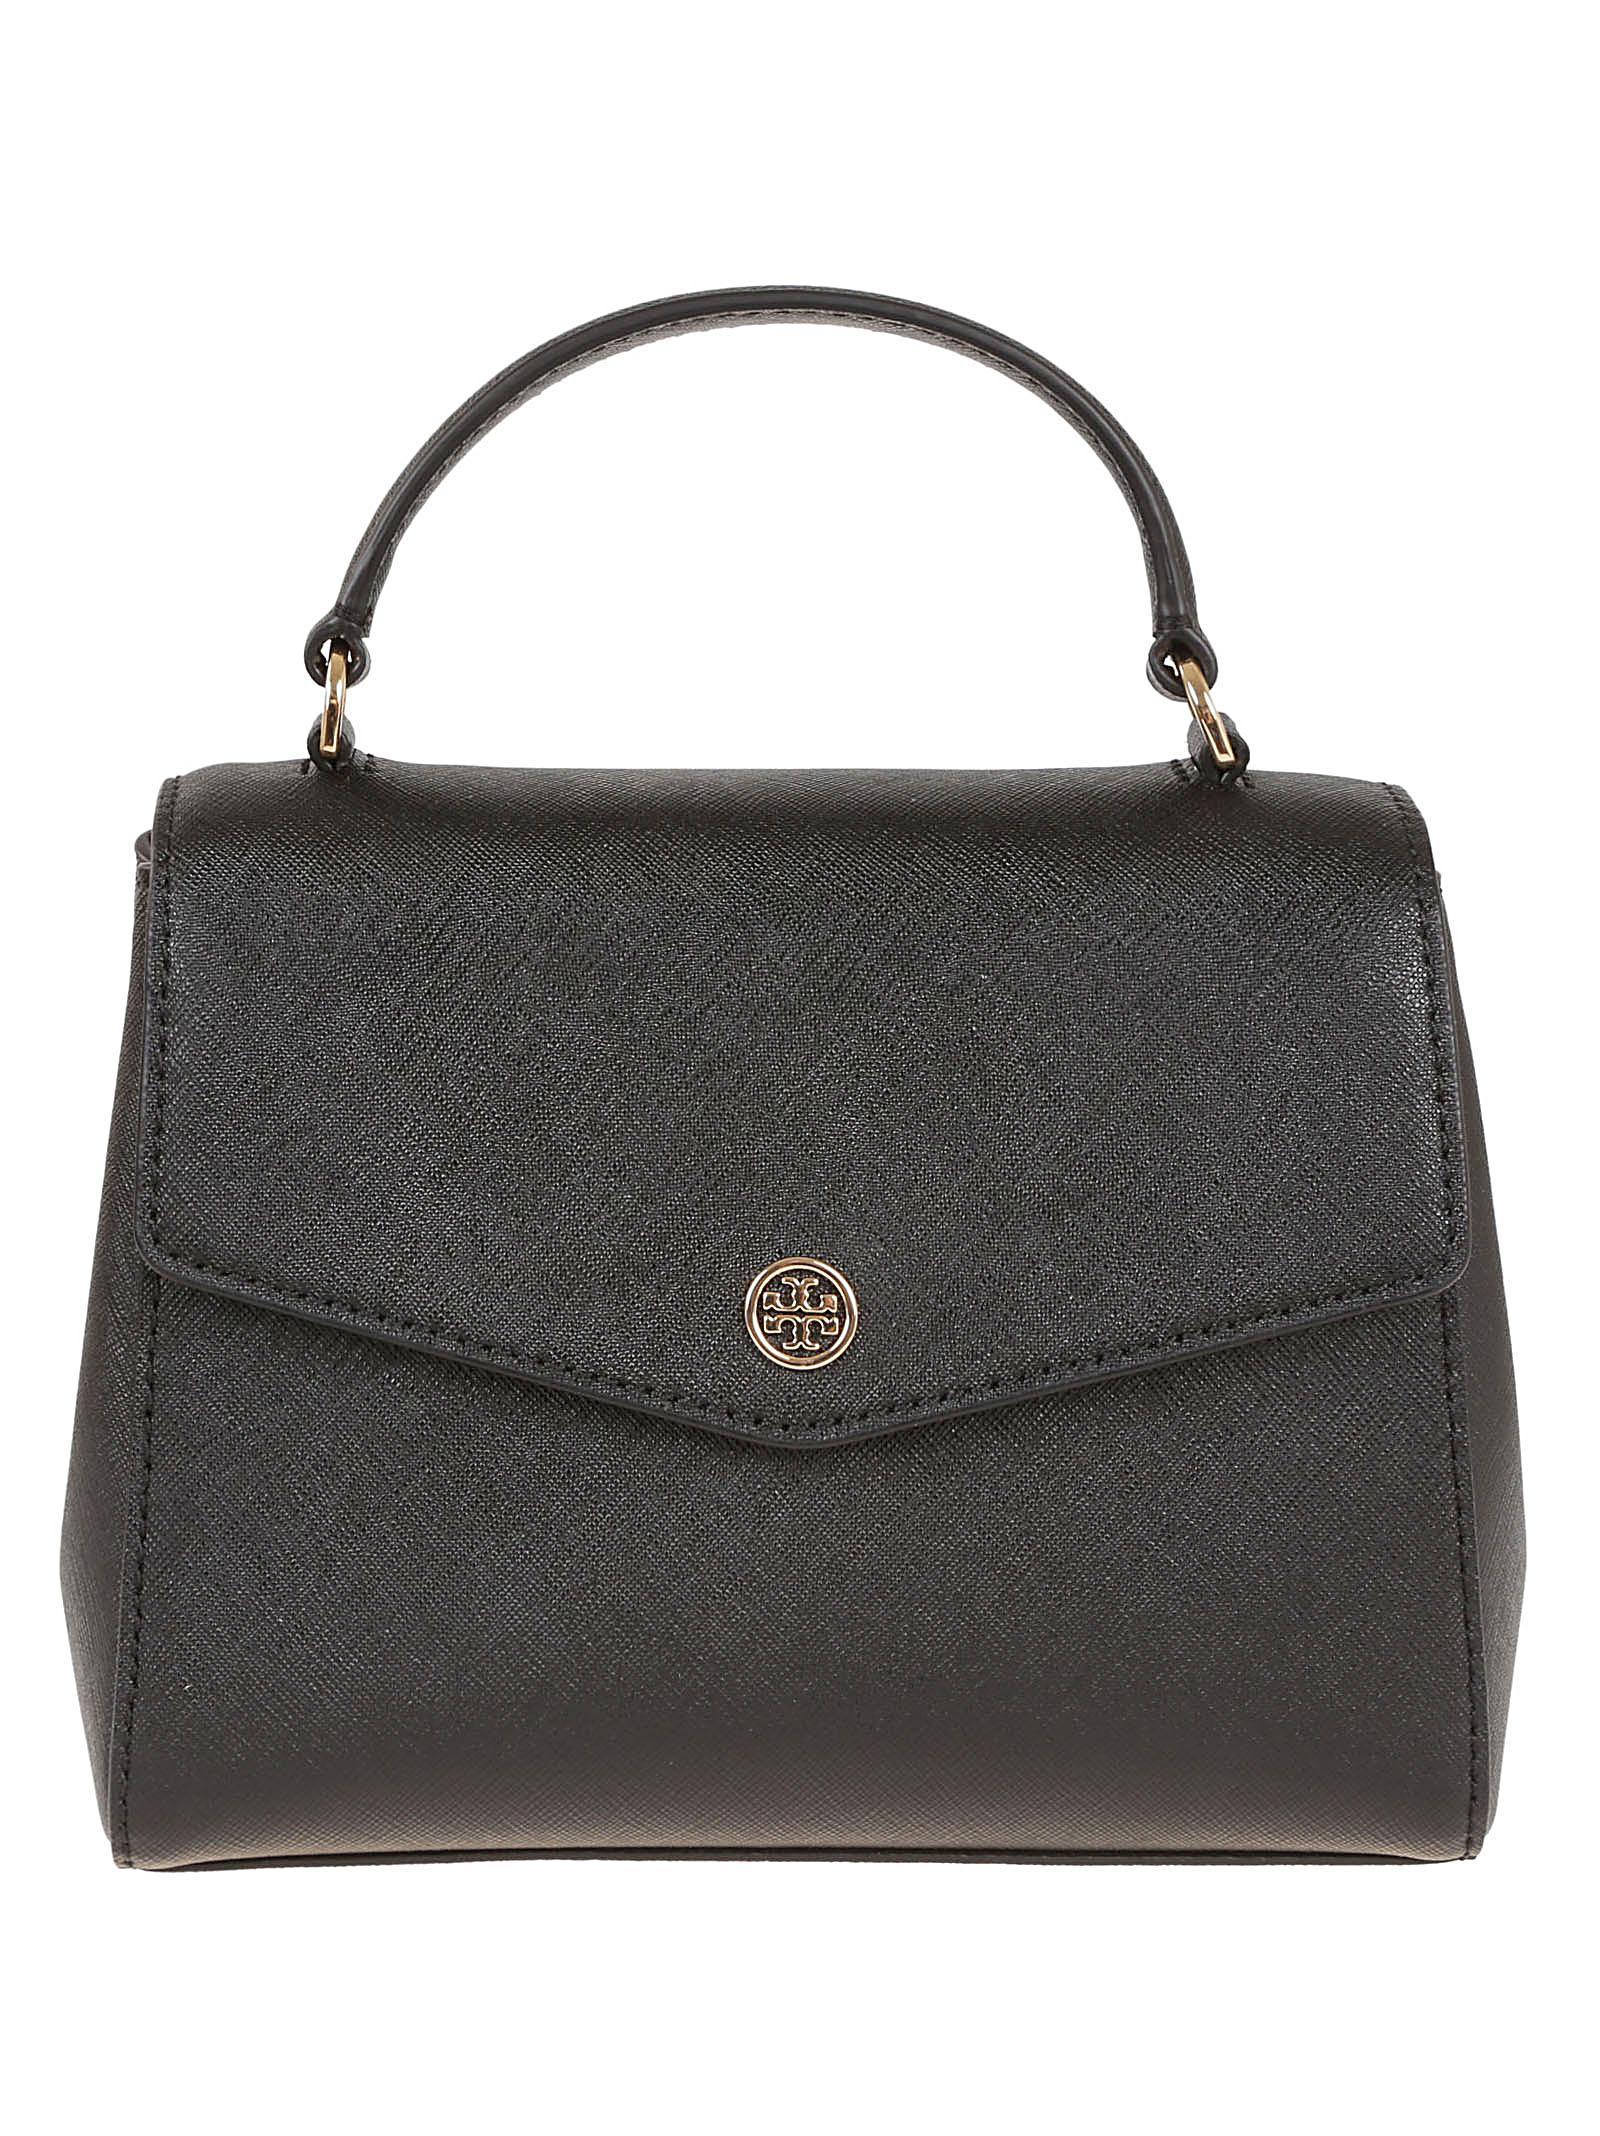 8570483a0771 Tory Burch Robinson Small Top-handle Satchel in Black - Lyst